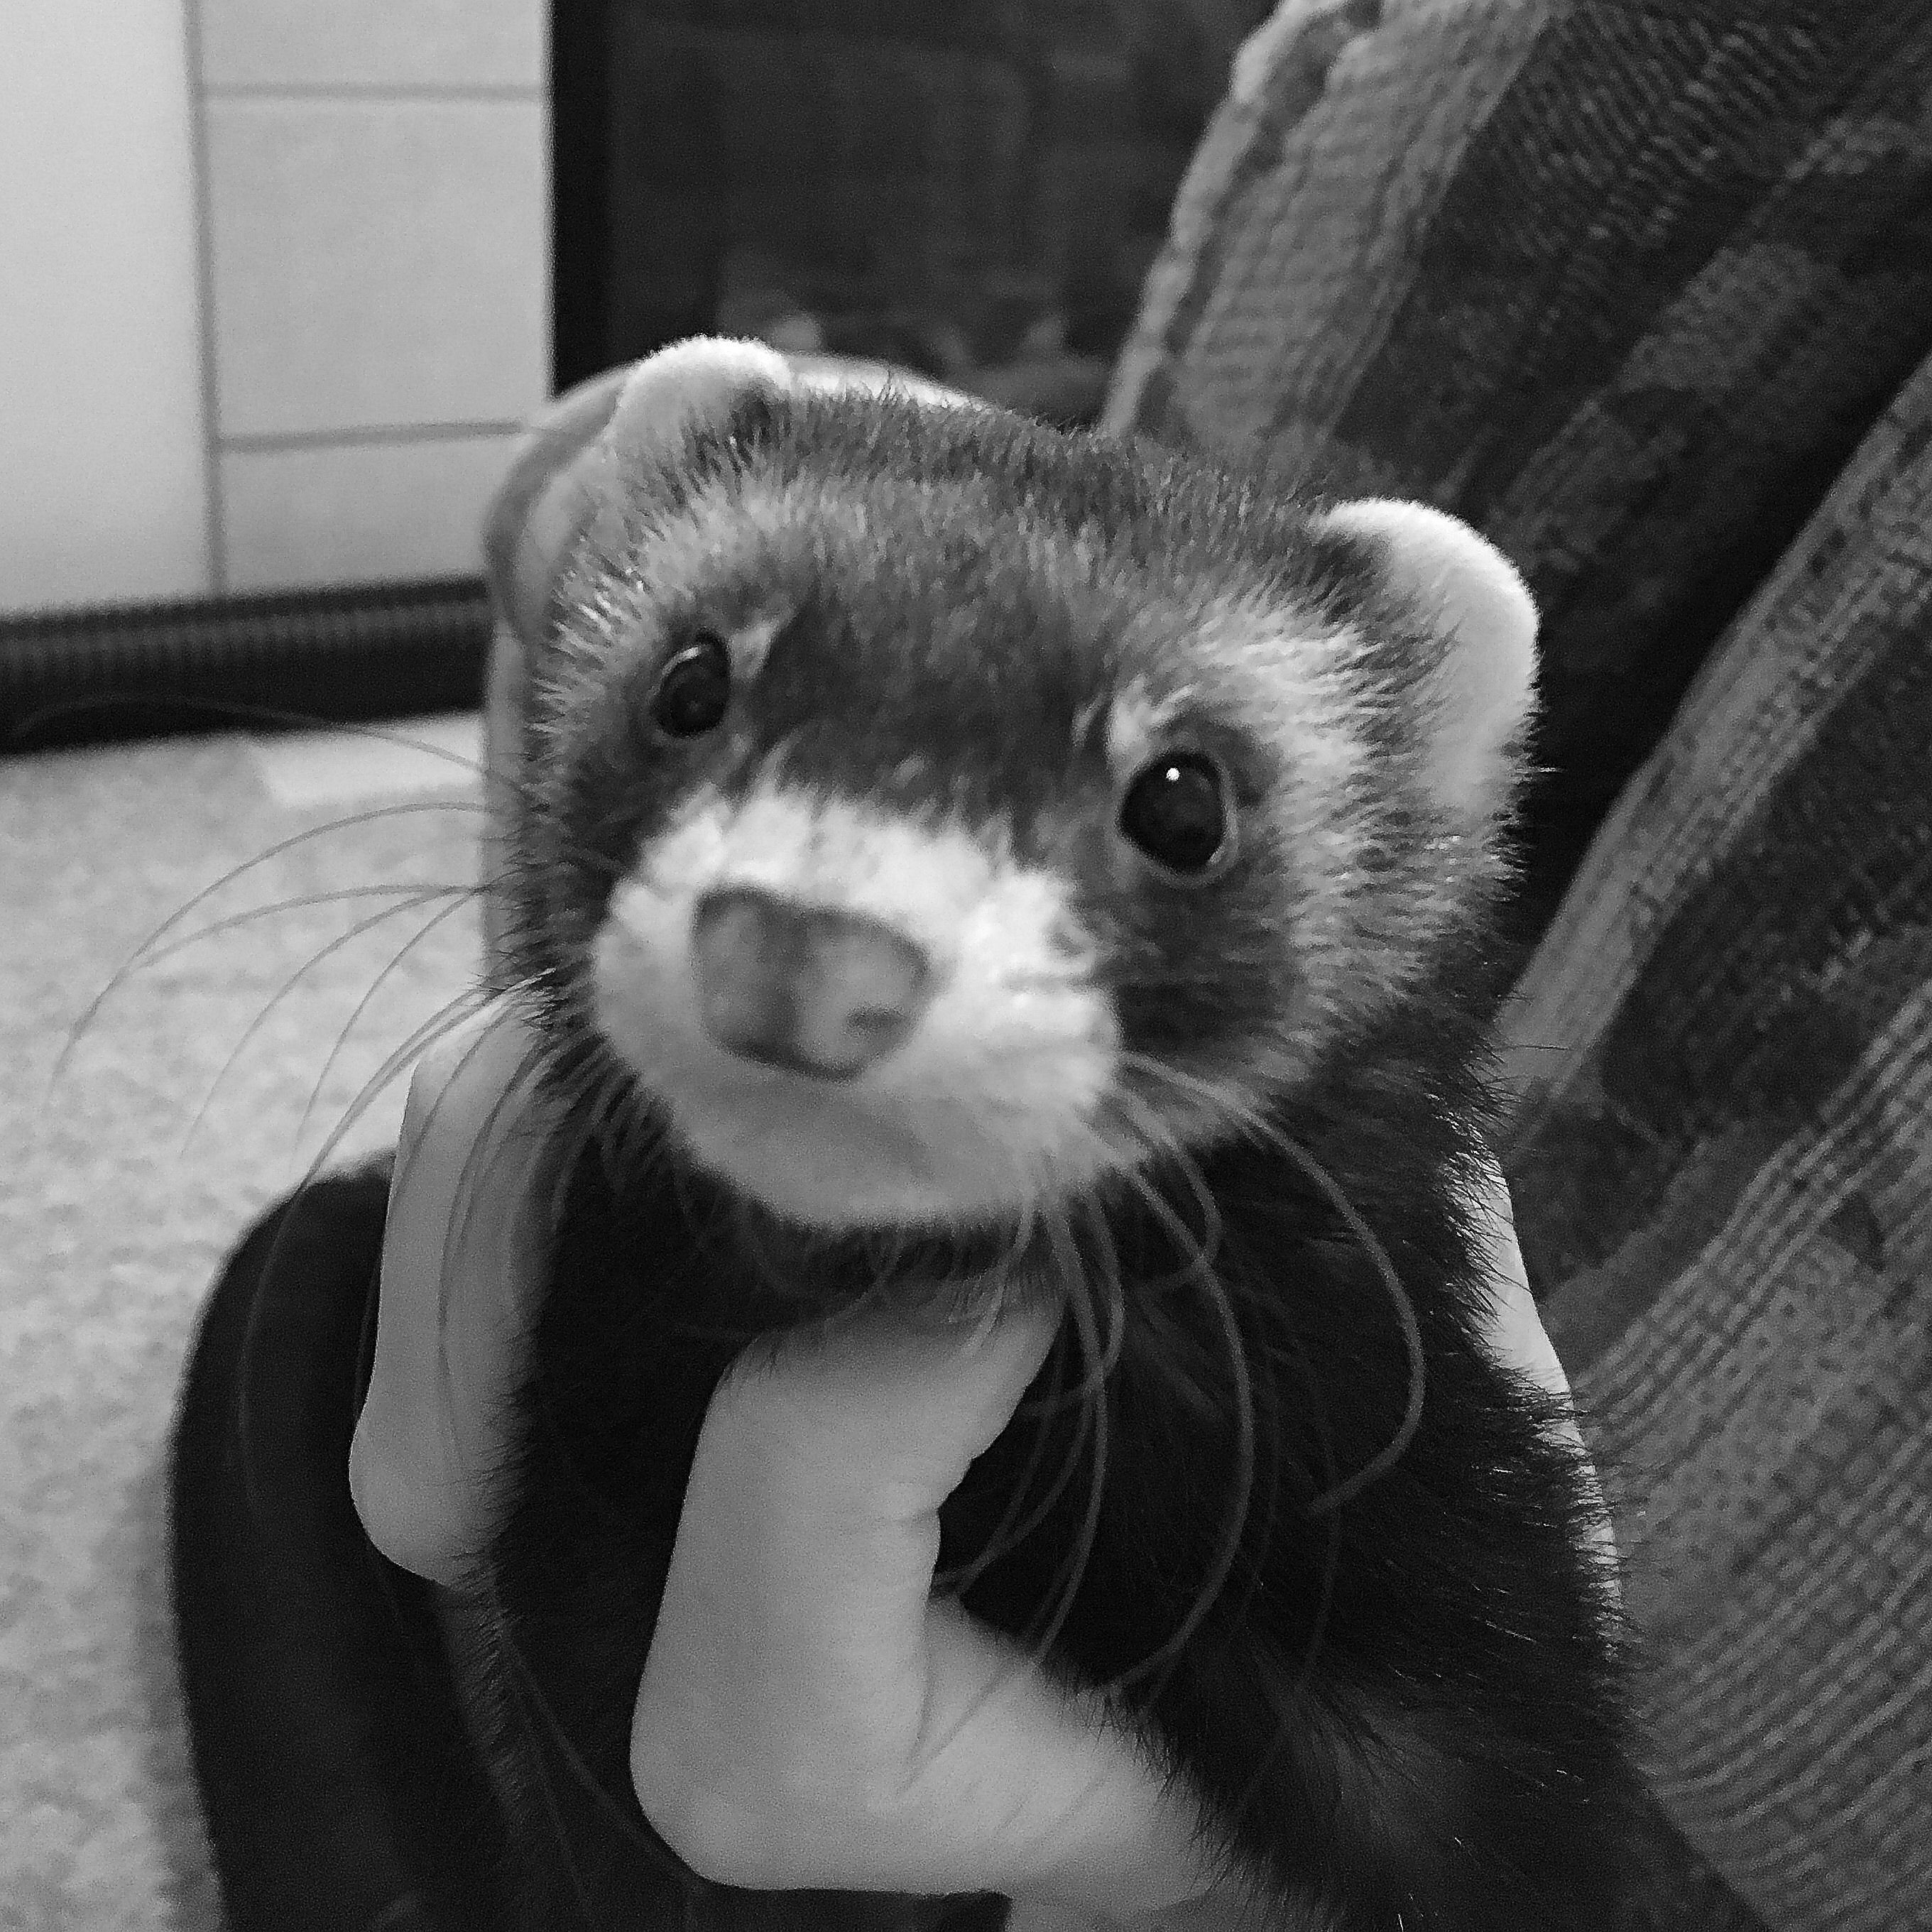 Febe the ferret